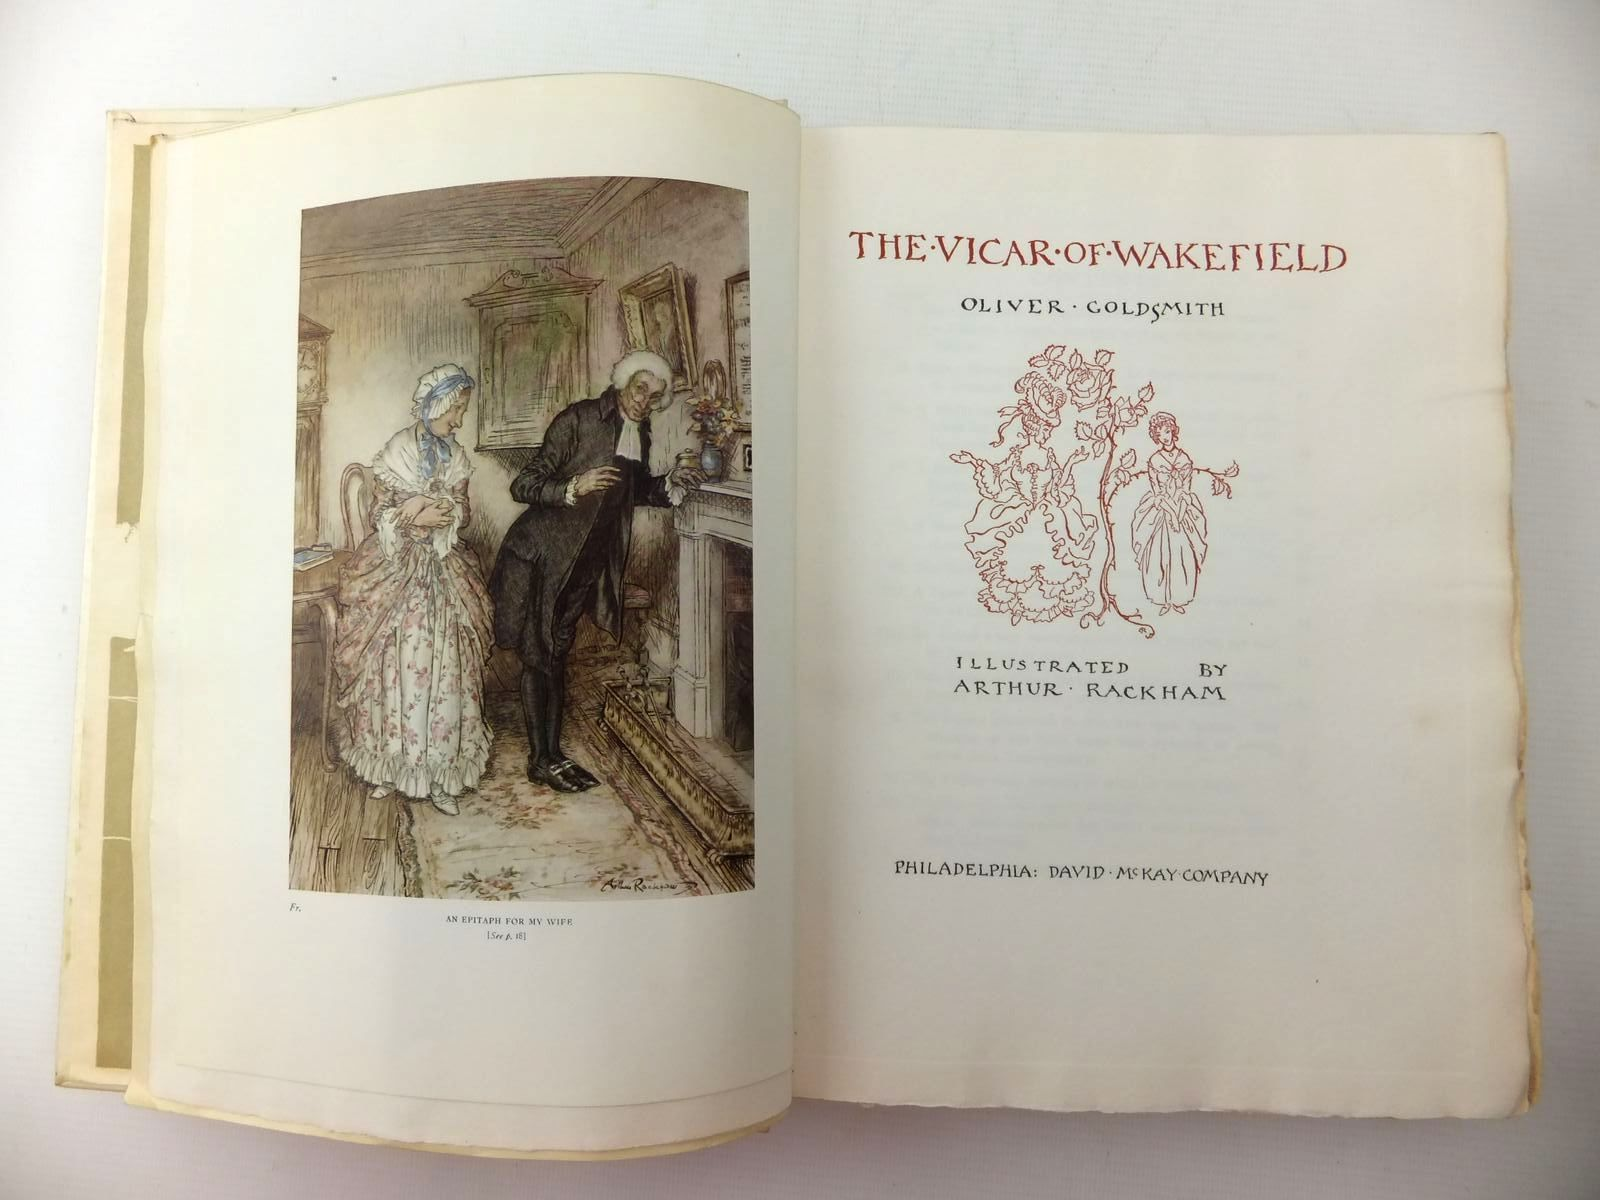 Photo of THE VICAR OF WAKEFIELD written by Goldsmith, Oliver illustrated by Rackham, Arthur published by David McKay Company (STOCK CODE: 576259)  for sale by Stella & Rose's Books